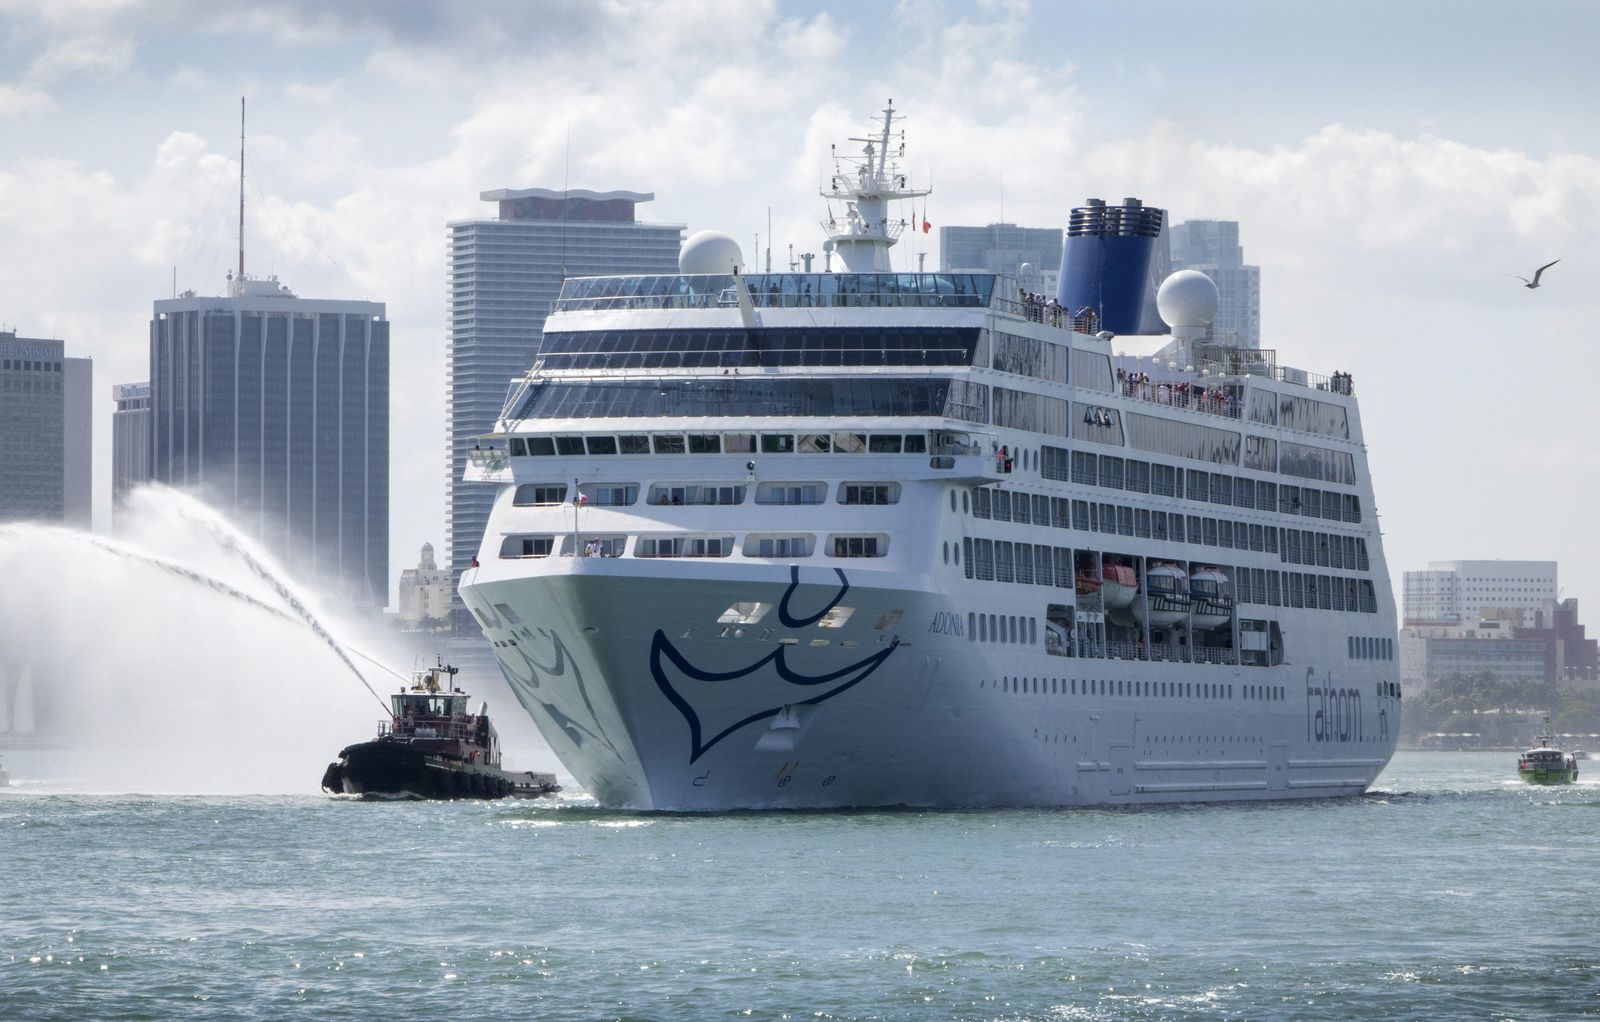 Cruise ship Adonia heads to Cuba from Miamis port